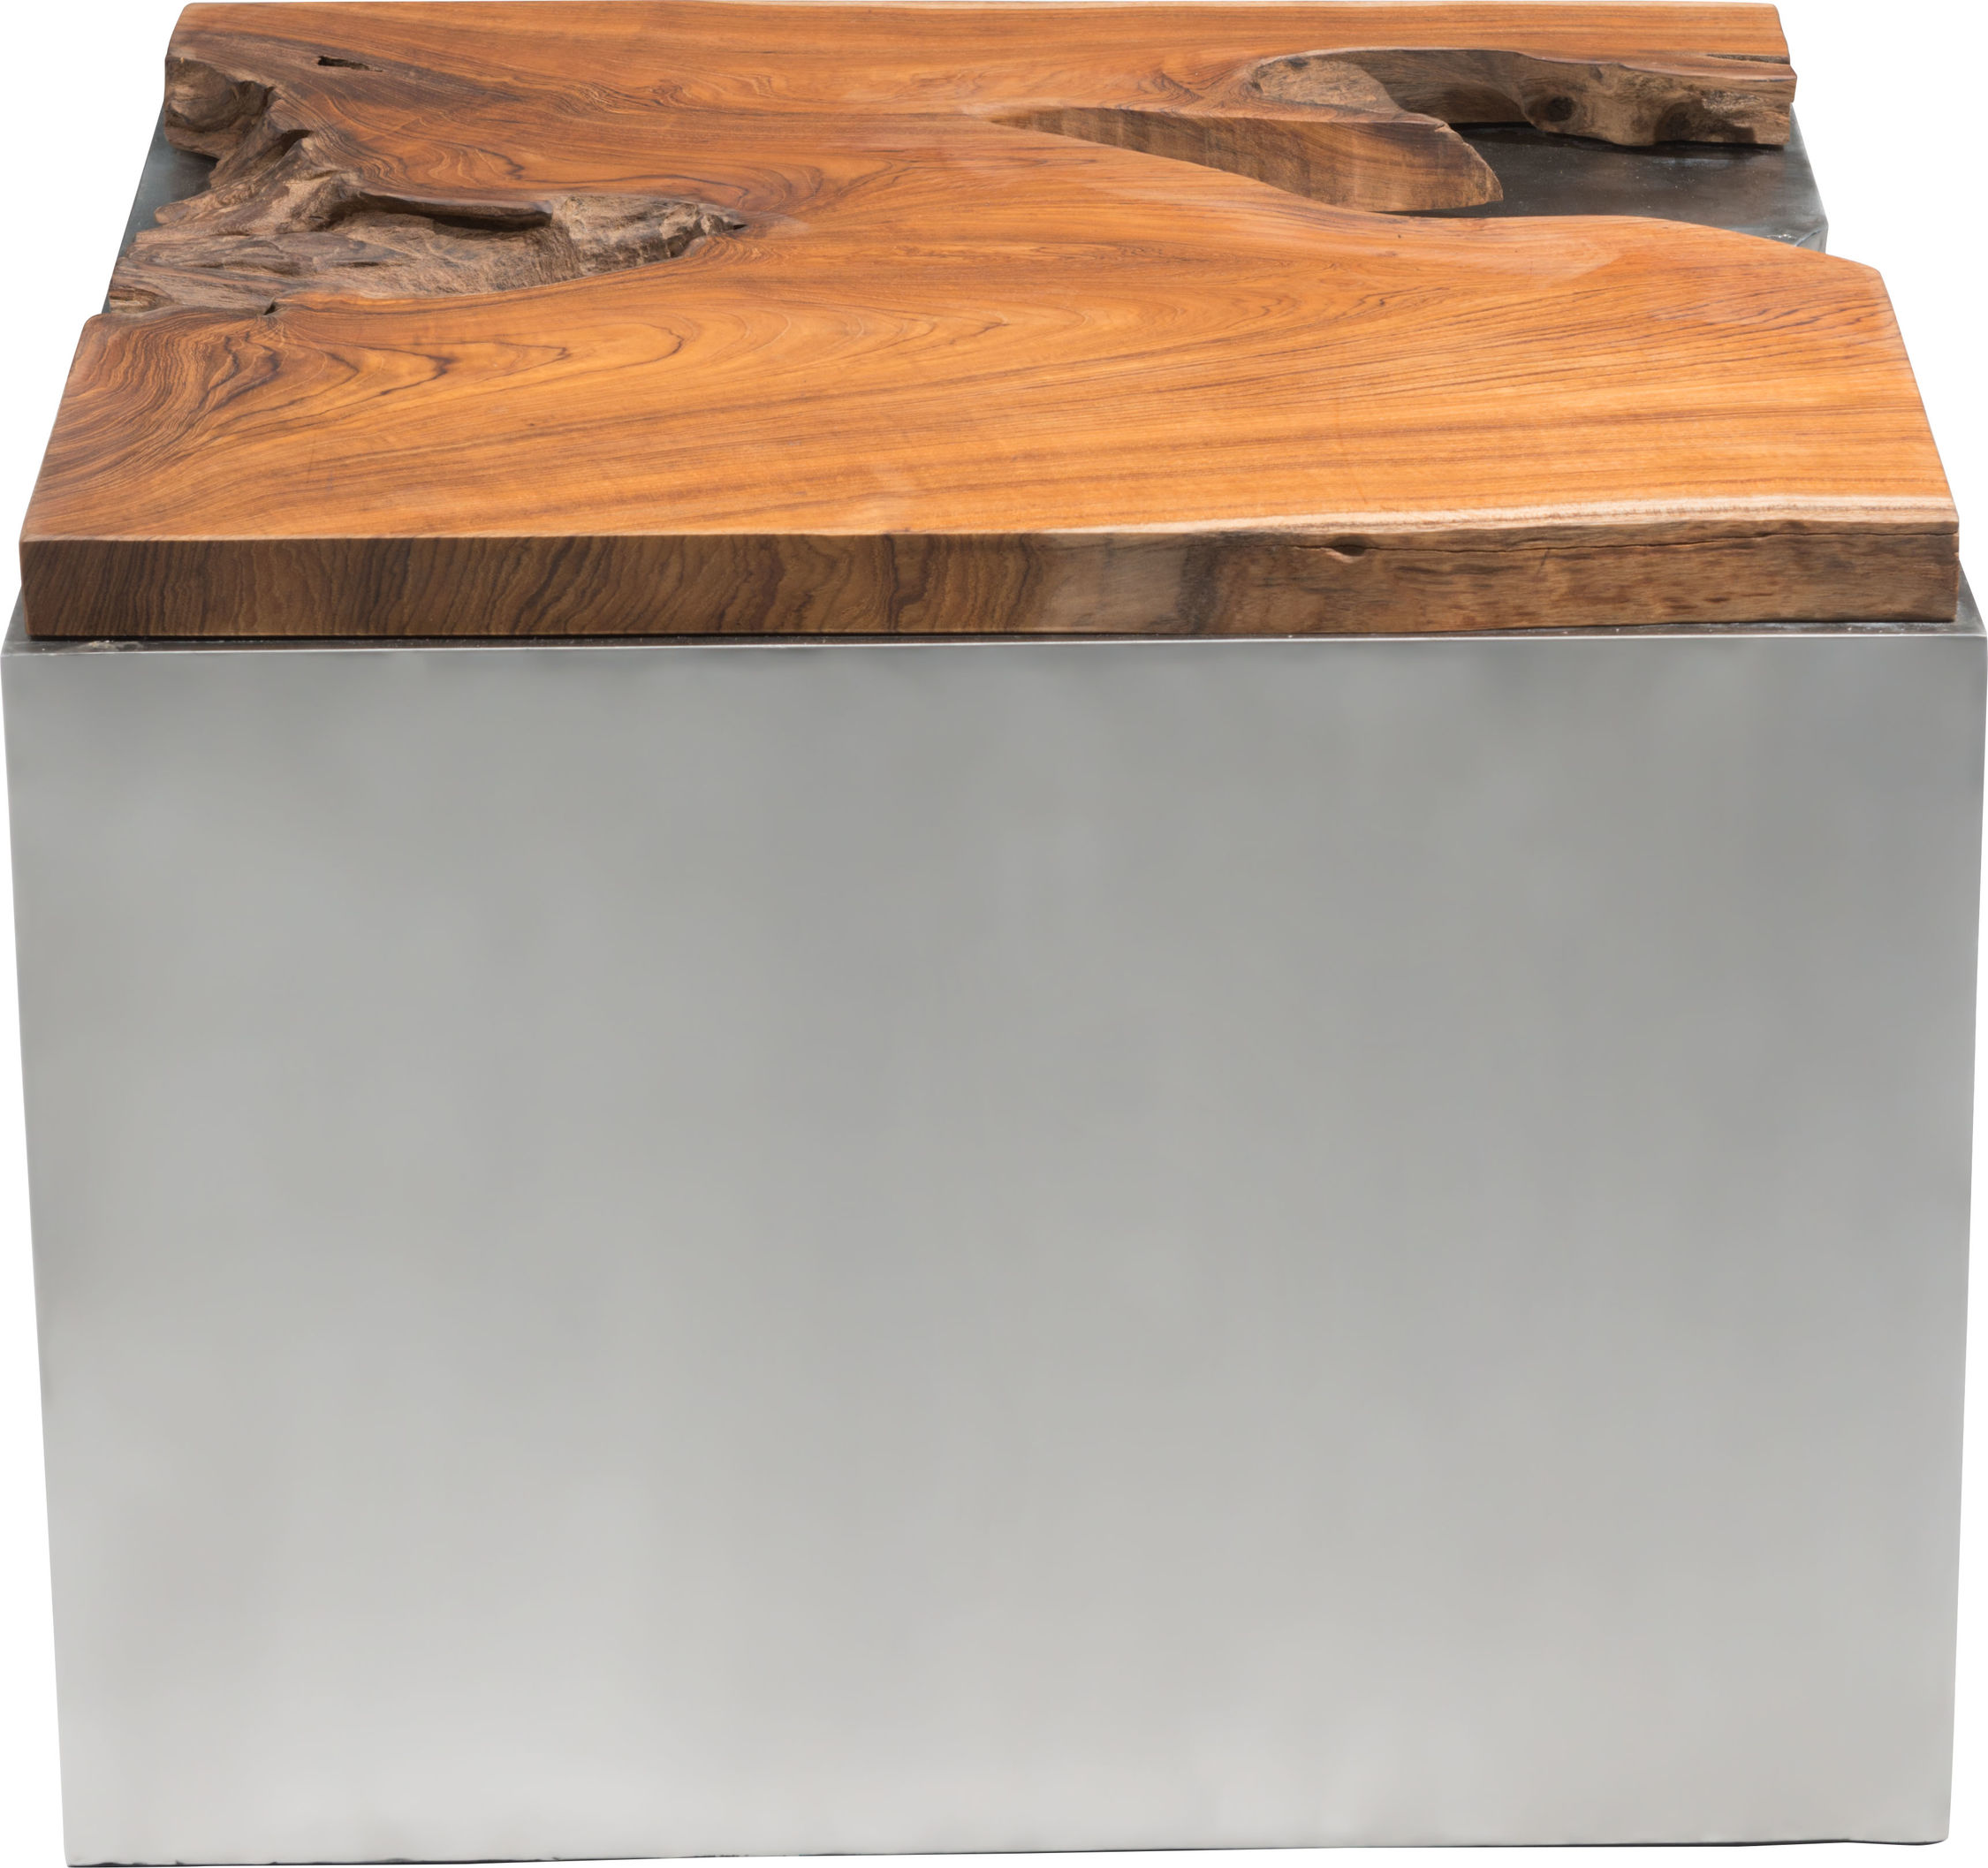 Luxe Koffie Luxe Coffee Table Hedgeapple